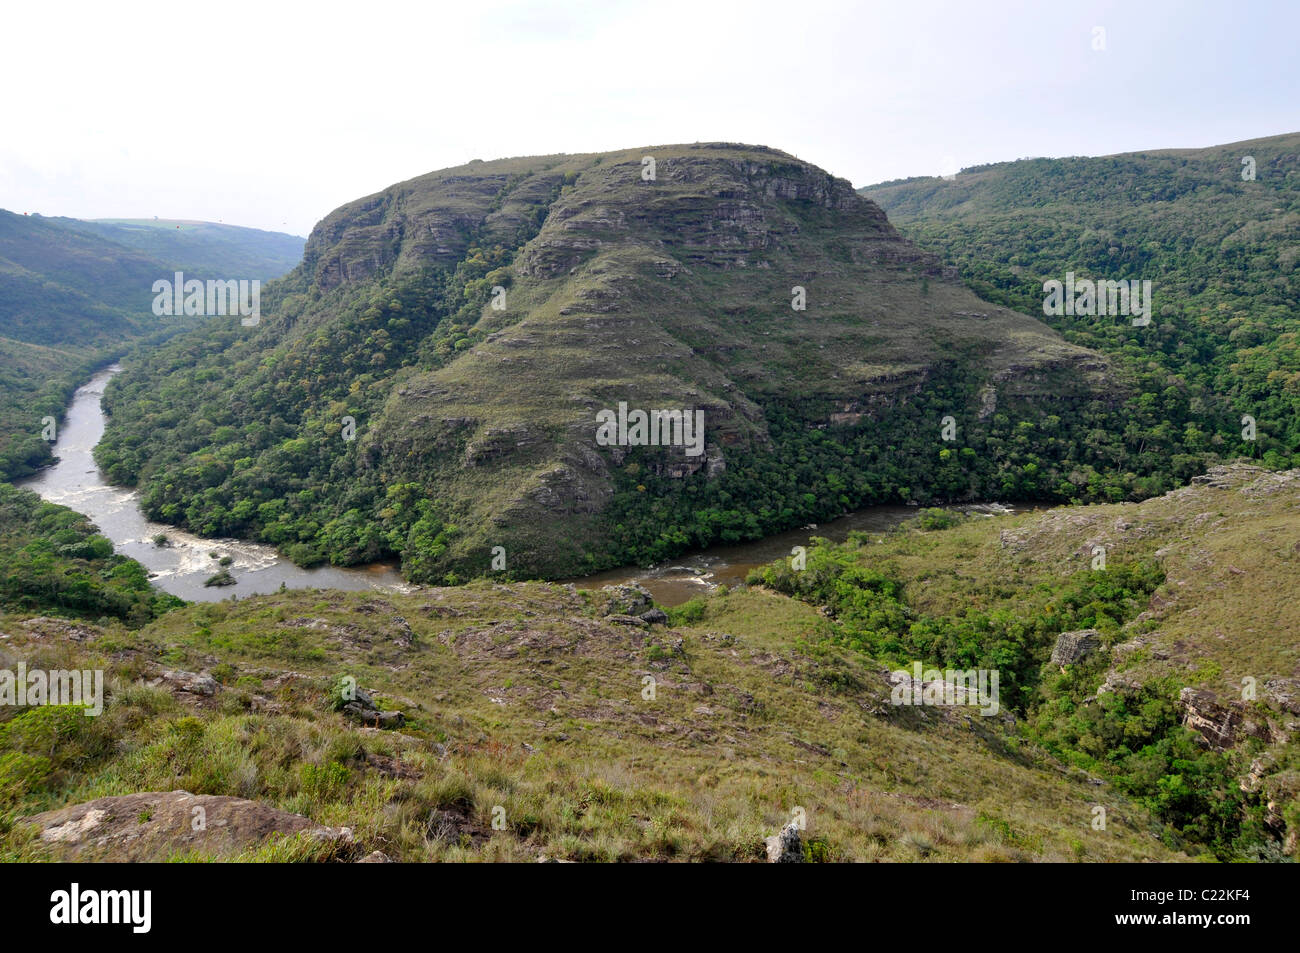 River and general view of Guartela canyon, Guartela state Park, Parana, Brazil - Stock Image